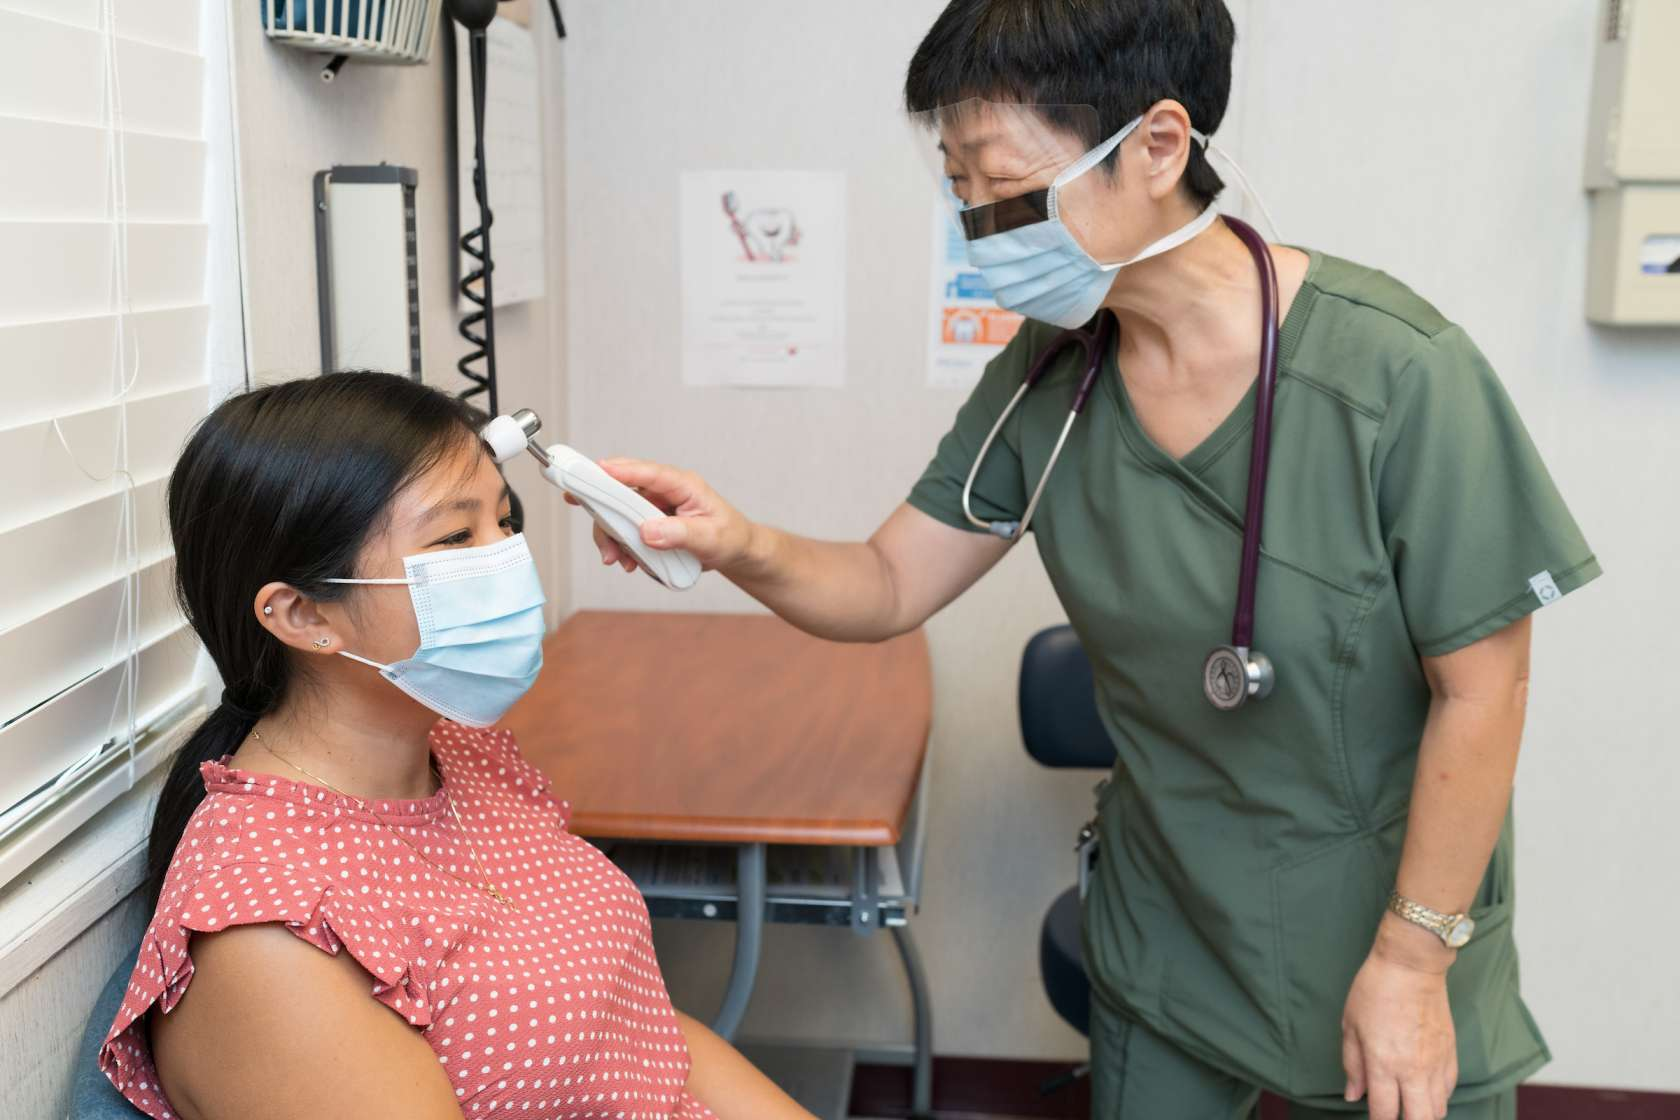 An female Asian nurse takes the temperature of a female patient.